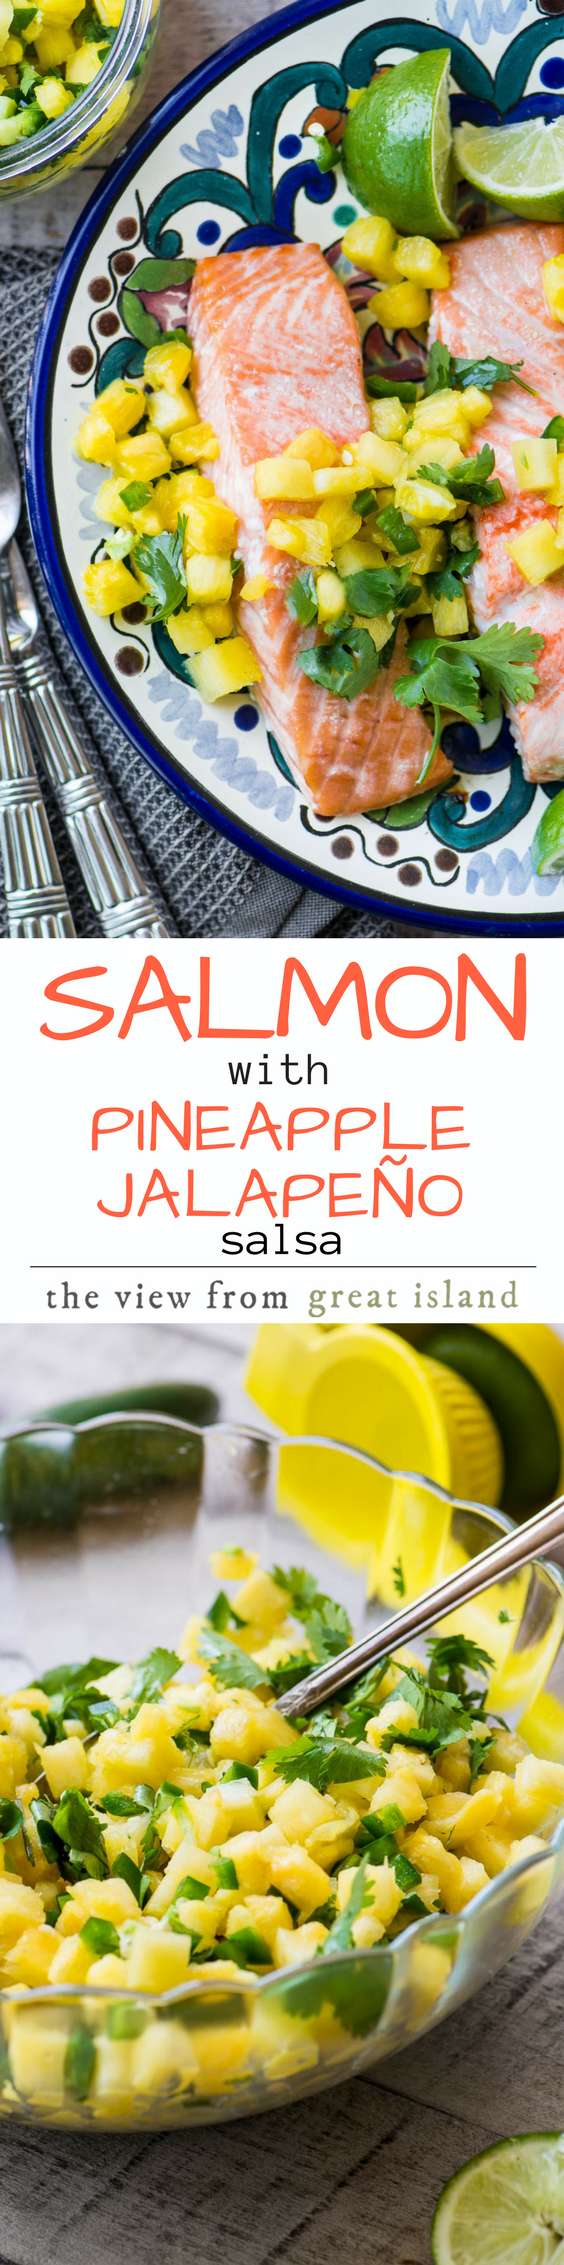 Salmon with Pineapple Jalapeno Salsa ~ this is a healthy light meal for a warm night, and the spicy fruit salsa can double as an appetizer ~ just add chips and an ice cold beer or margarita! #30minutemeal #healthy #salmon #fish #salsa #pineapple #mexican #jalapeno #dinner #easydinner